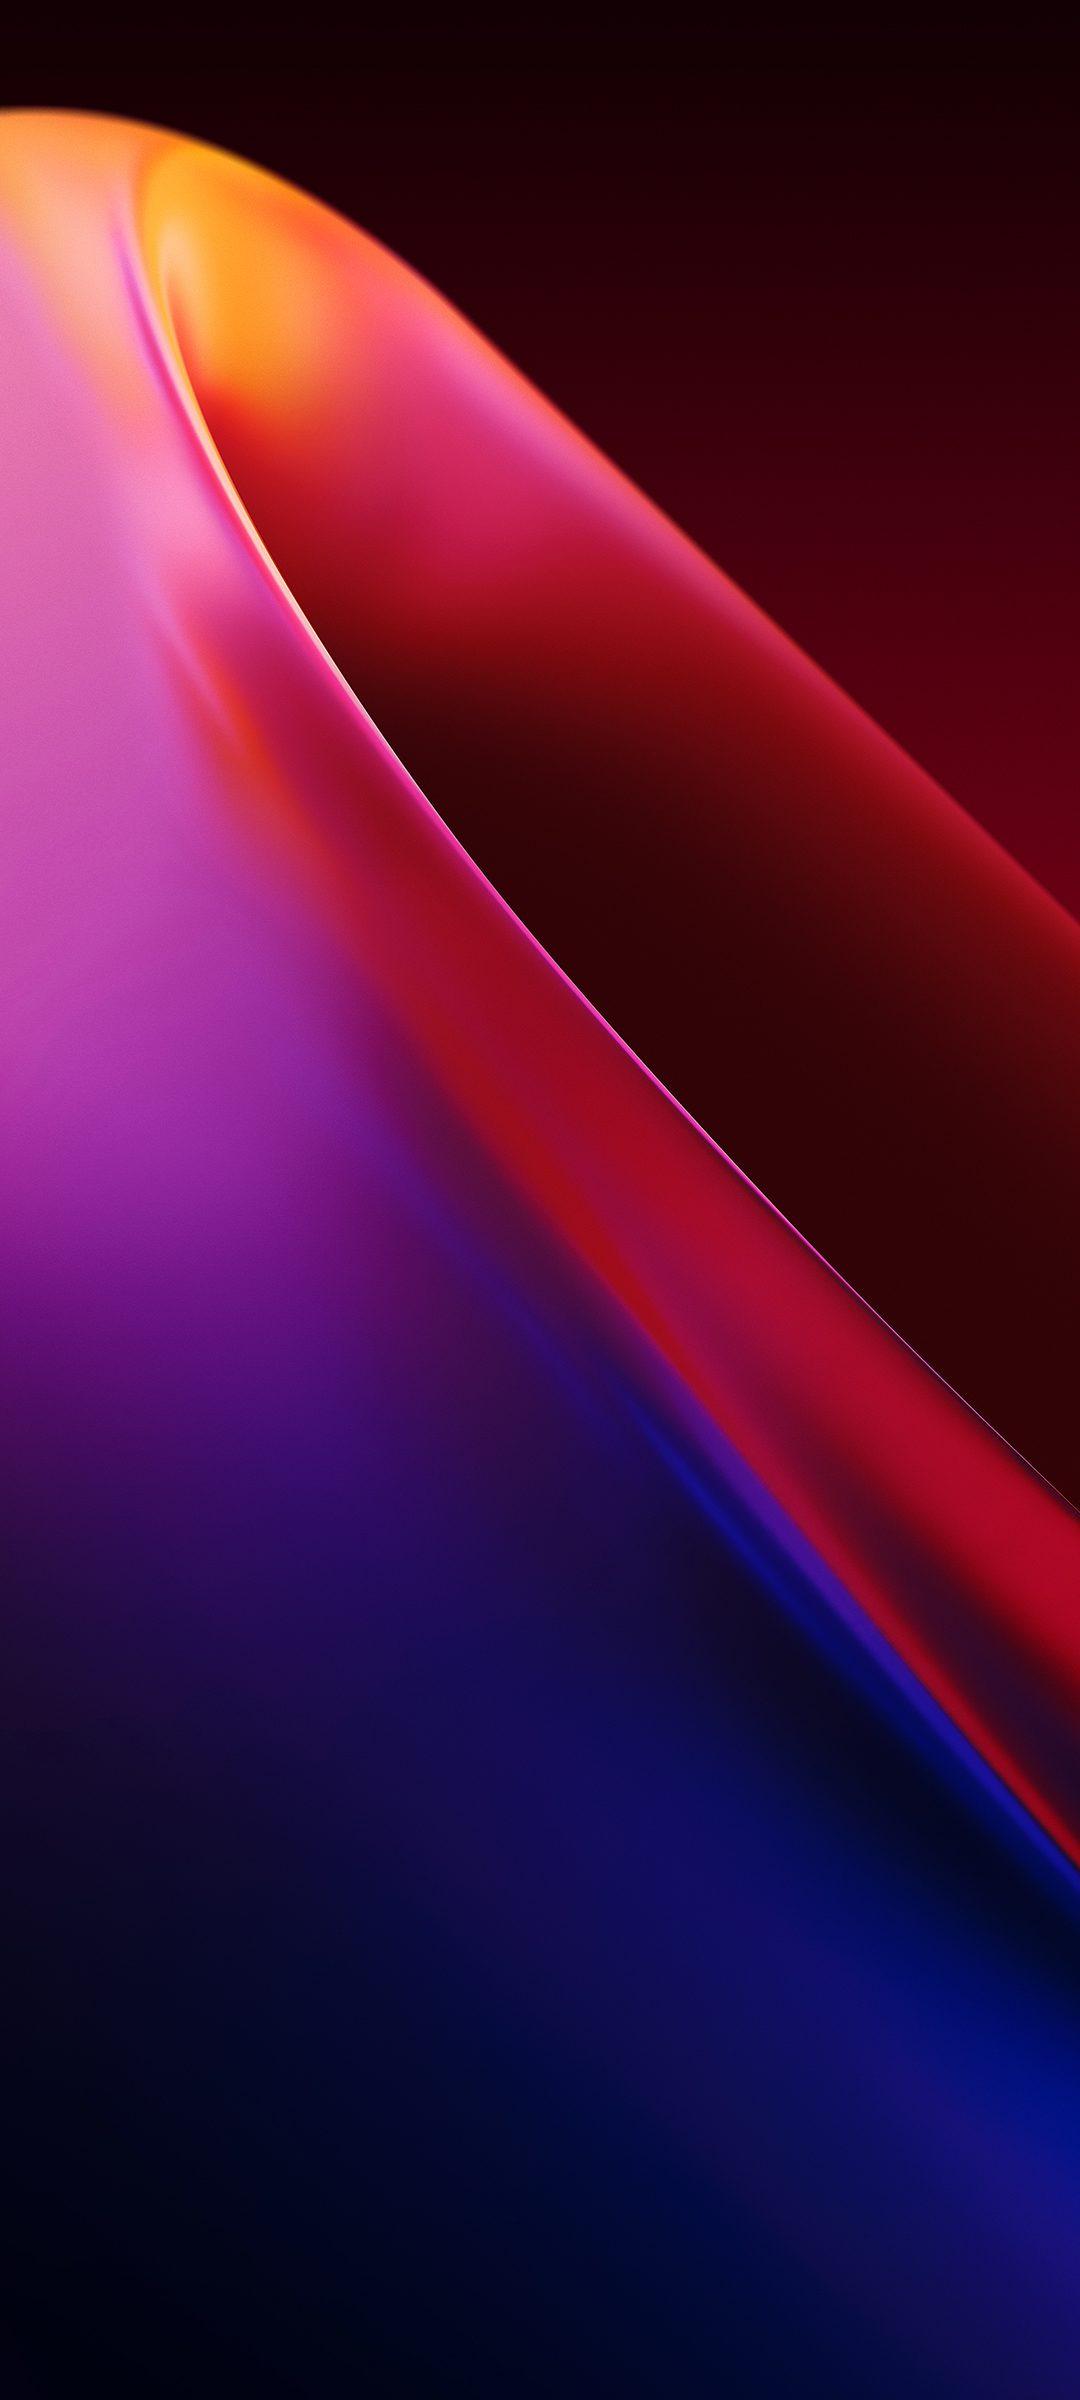 Stock Images Users Download Official Oneplus Nord Wallpapers Here Mspoweruser